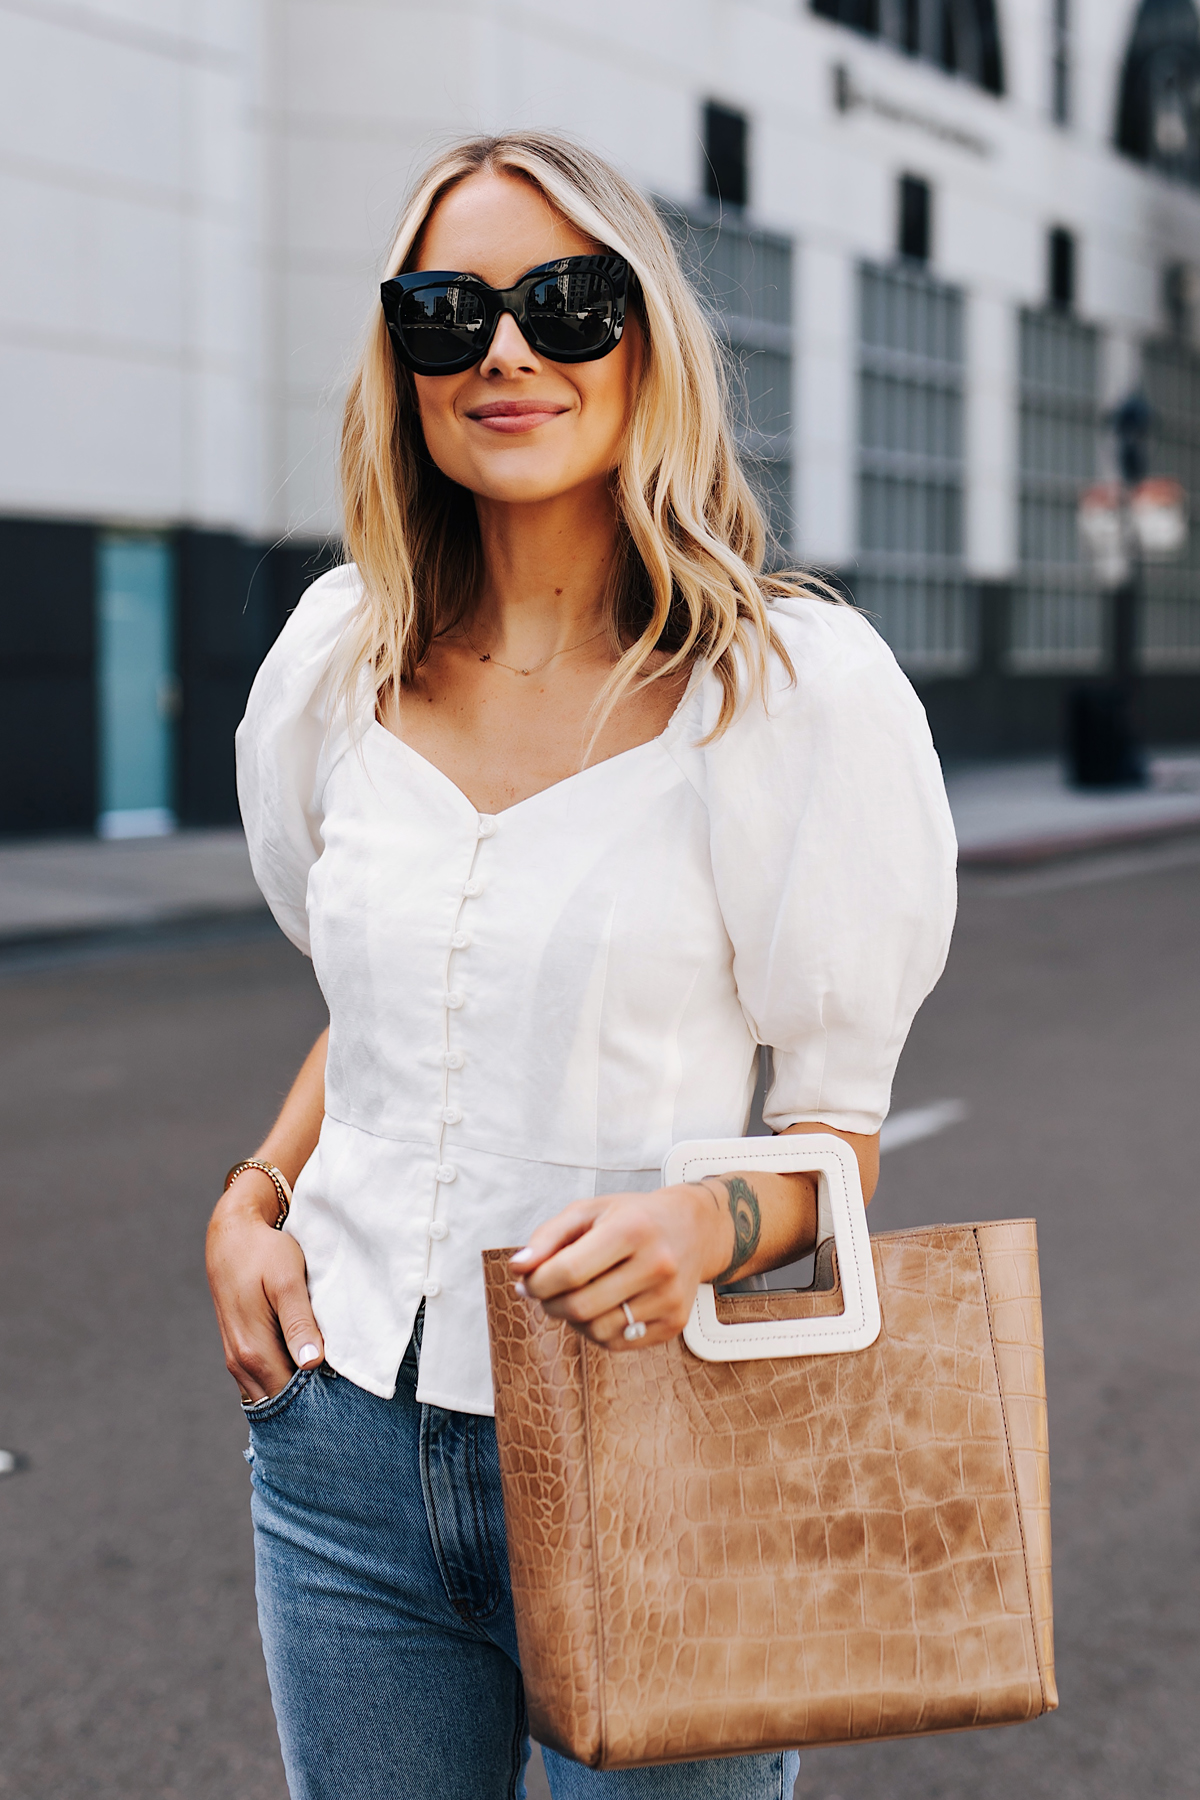 Blonde Woman Wearing White Blouse Jeans Staud Shirley Croc Embossed Tote Fashion Jackson San Diego Fashion Blogger Street Style